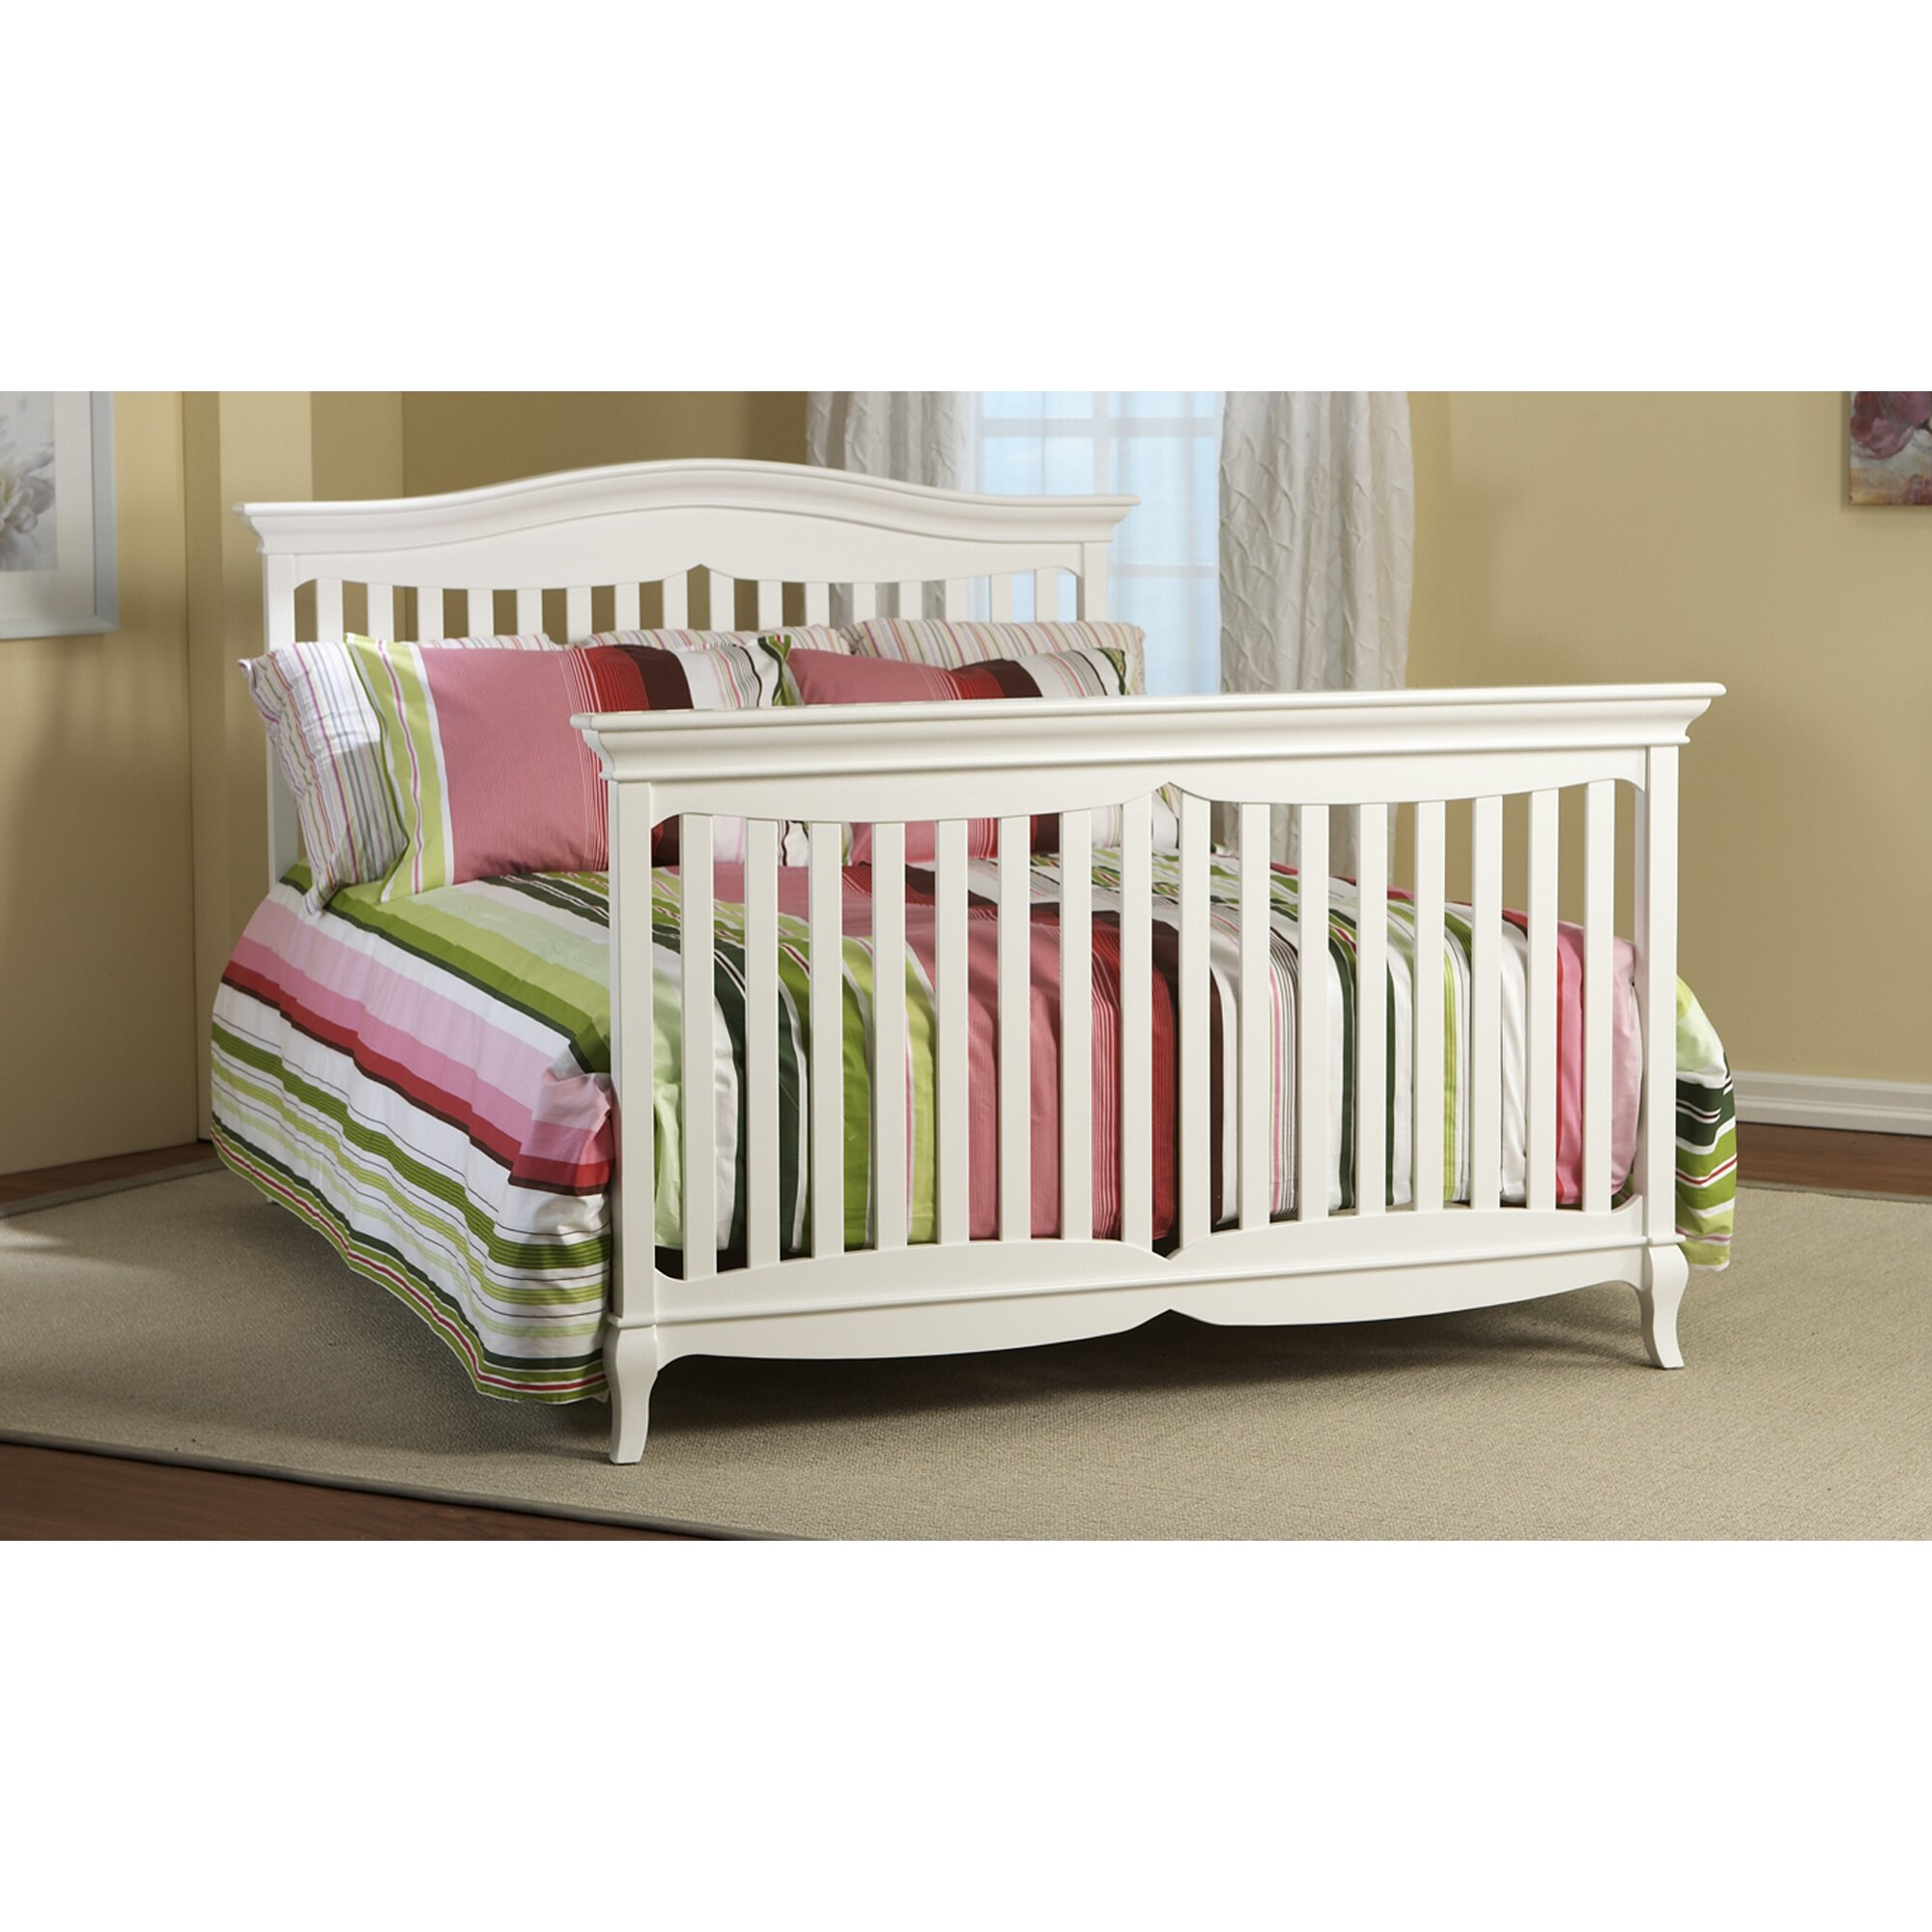 Pali crib for sale used - Pali Mantova 4 In 1 Convertible Crib